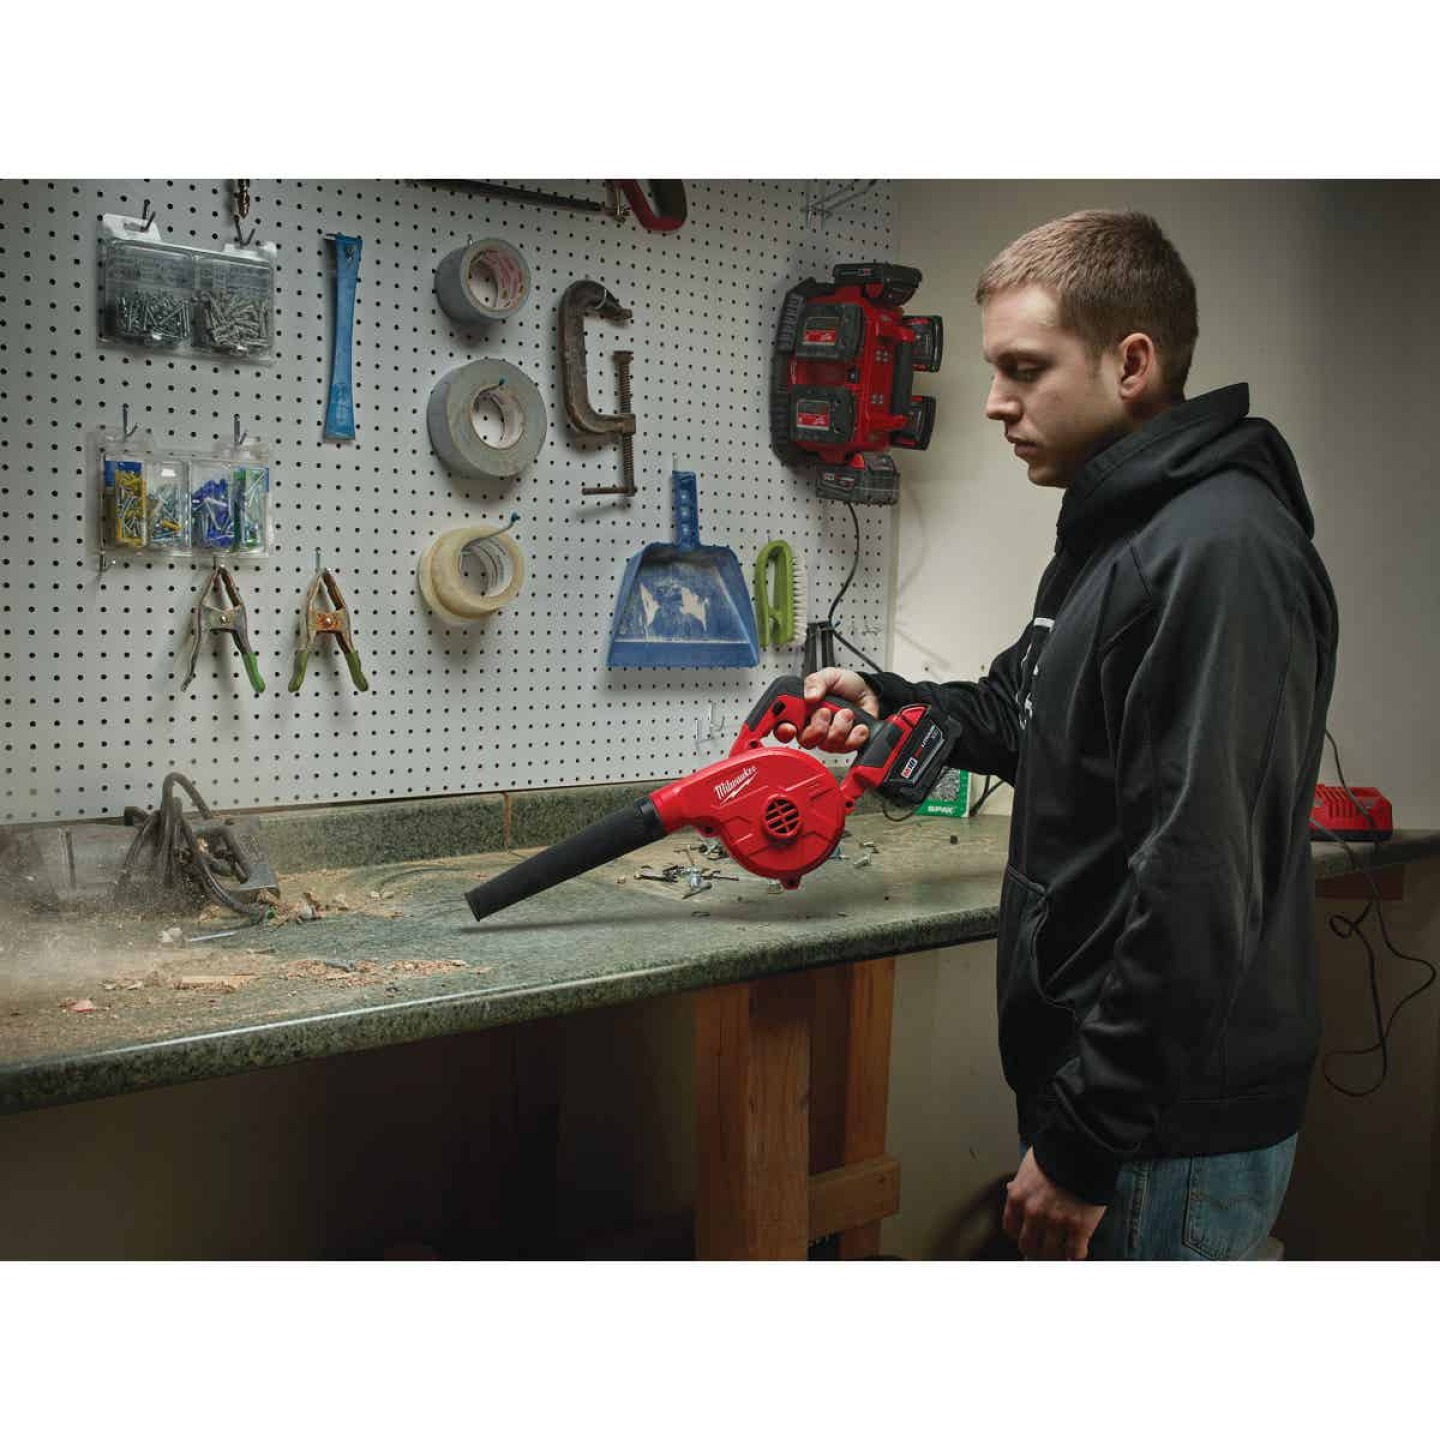 Milwaukee M18 160 MPH 18V Compact Lithium-Ion Cordless Blower (Bare Tool) Image 4